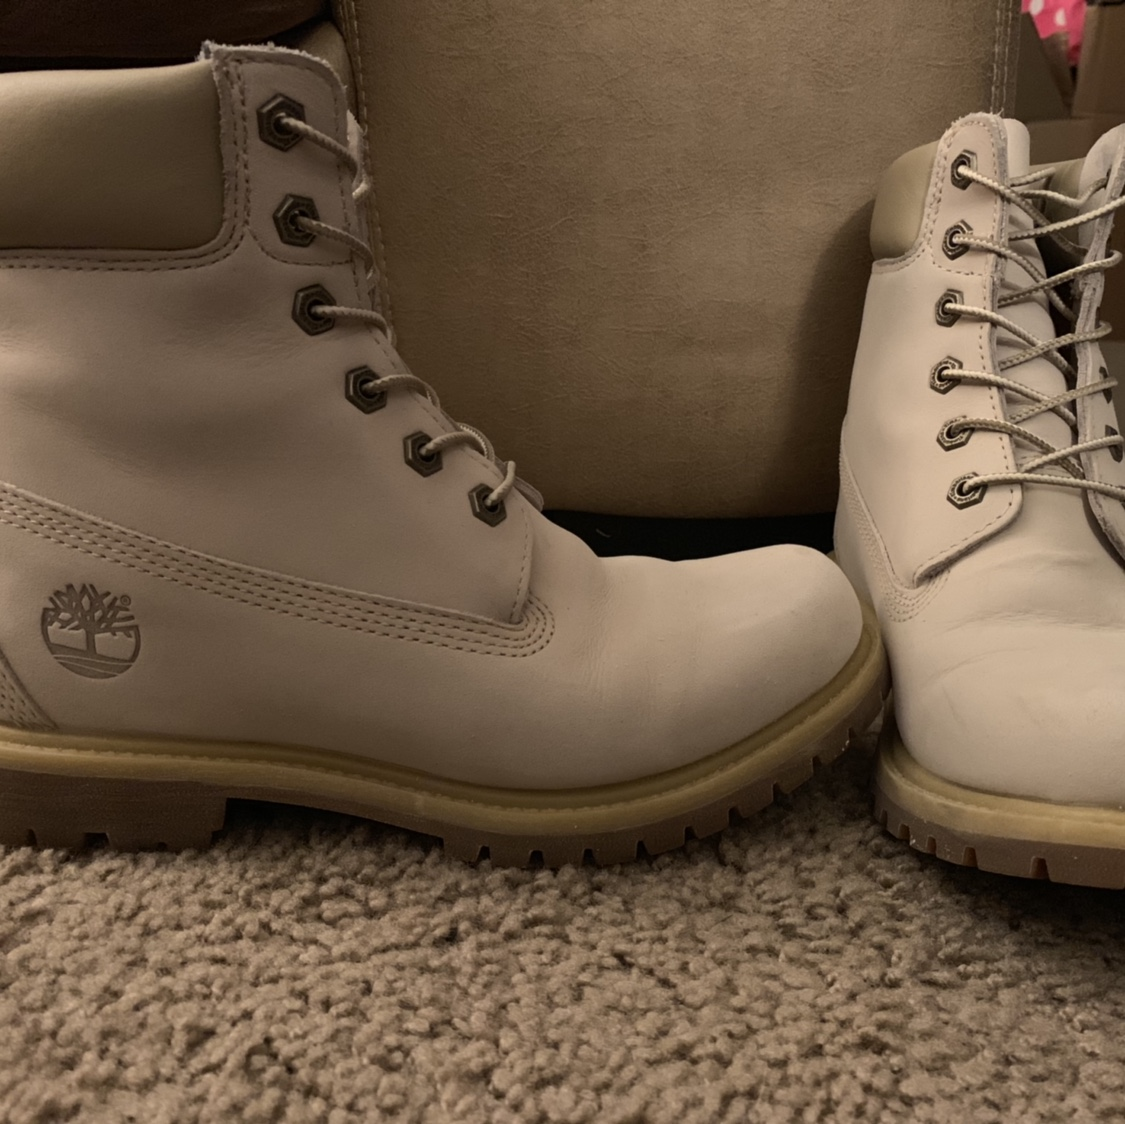 Off White Cream colored Timberland boots. Women's Depop